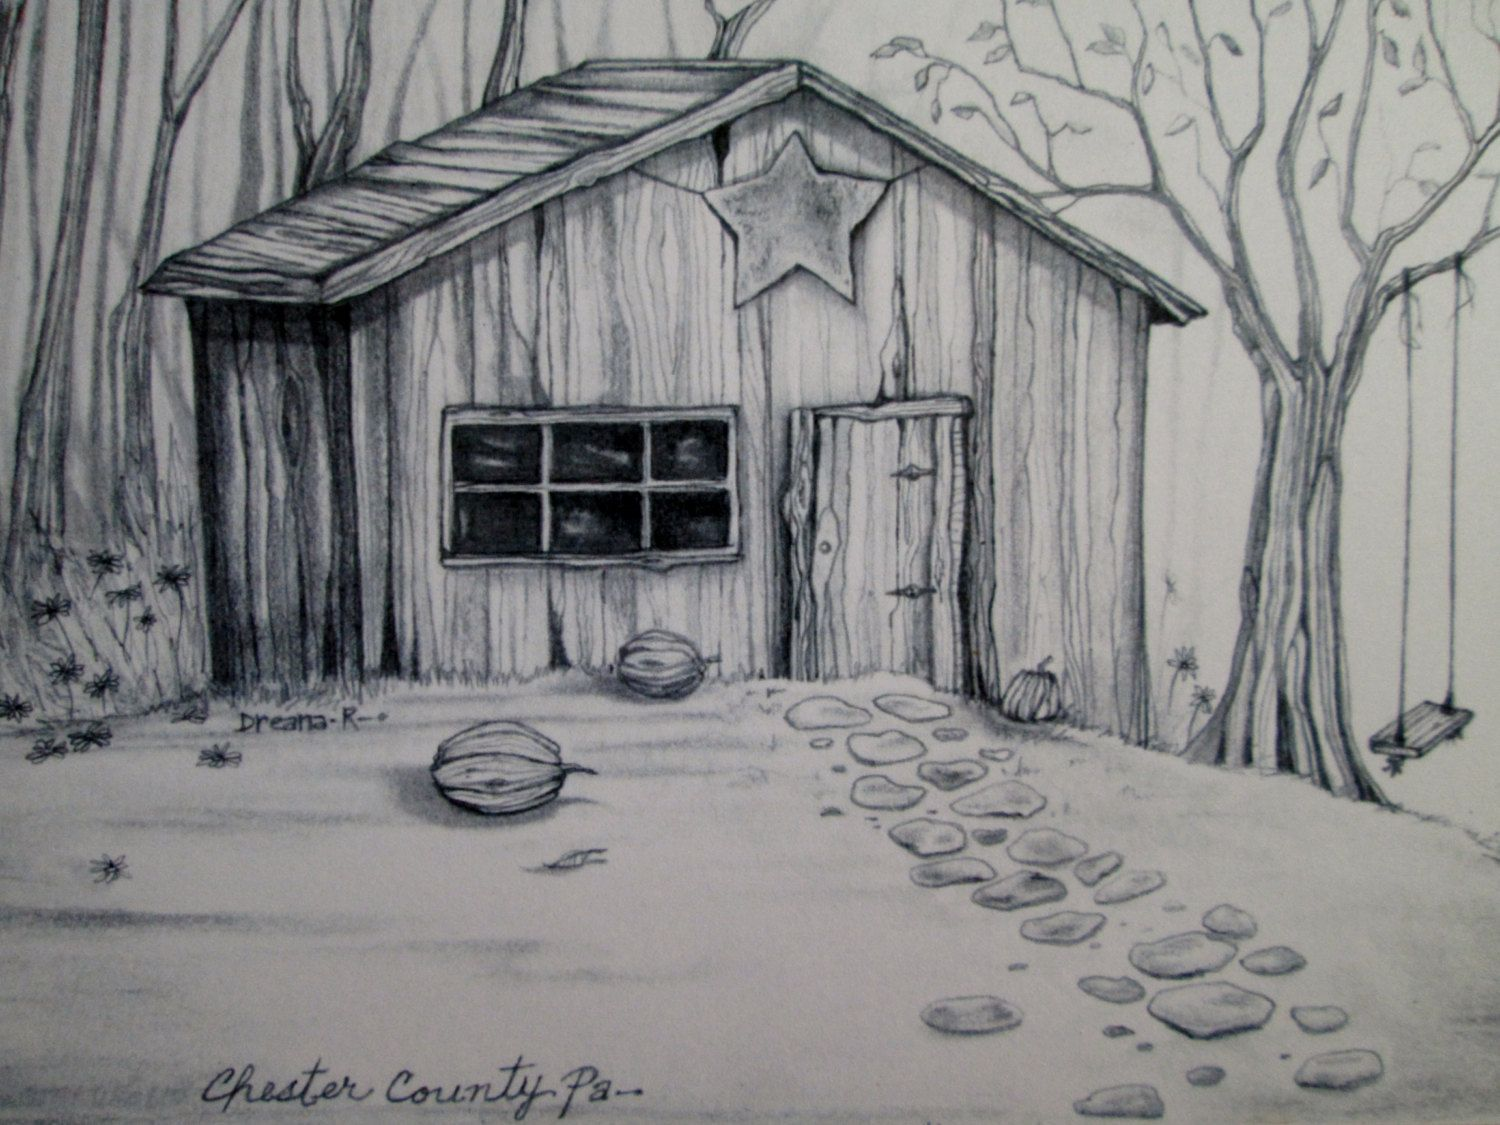 vector freeuse Black and White Country Farm Shed Original Design Fine Art